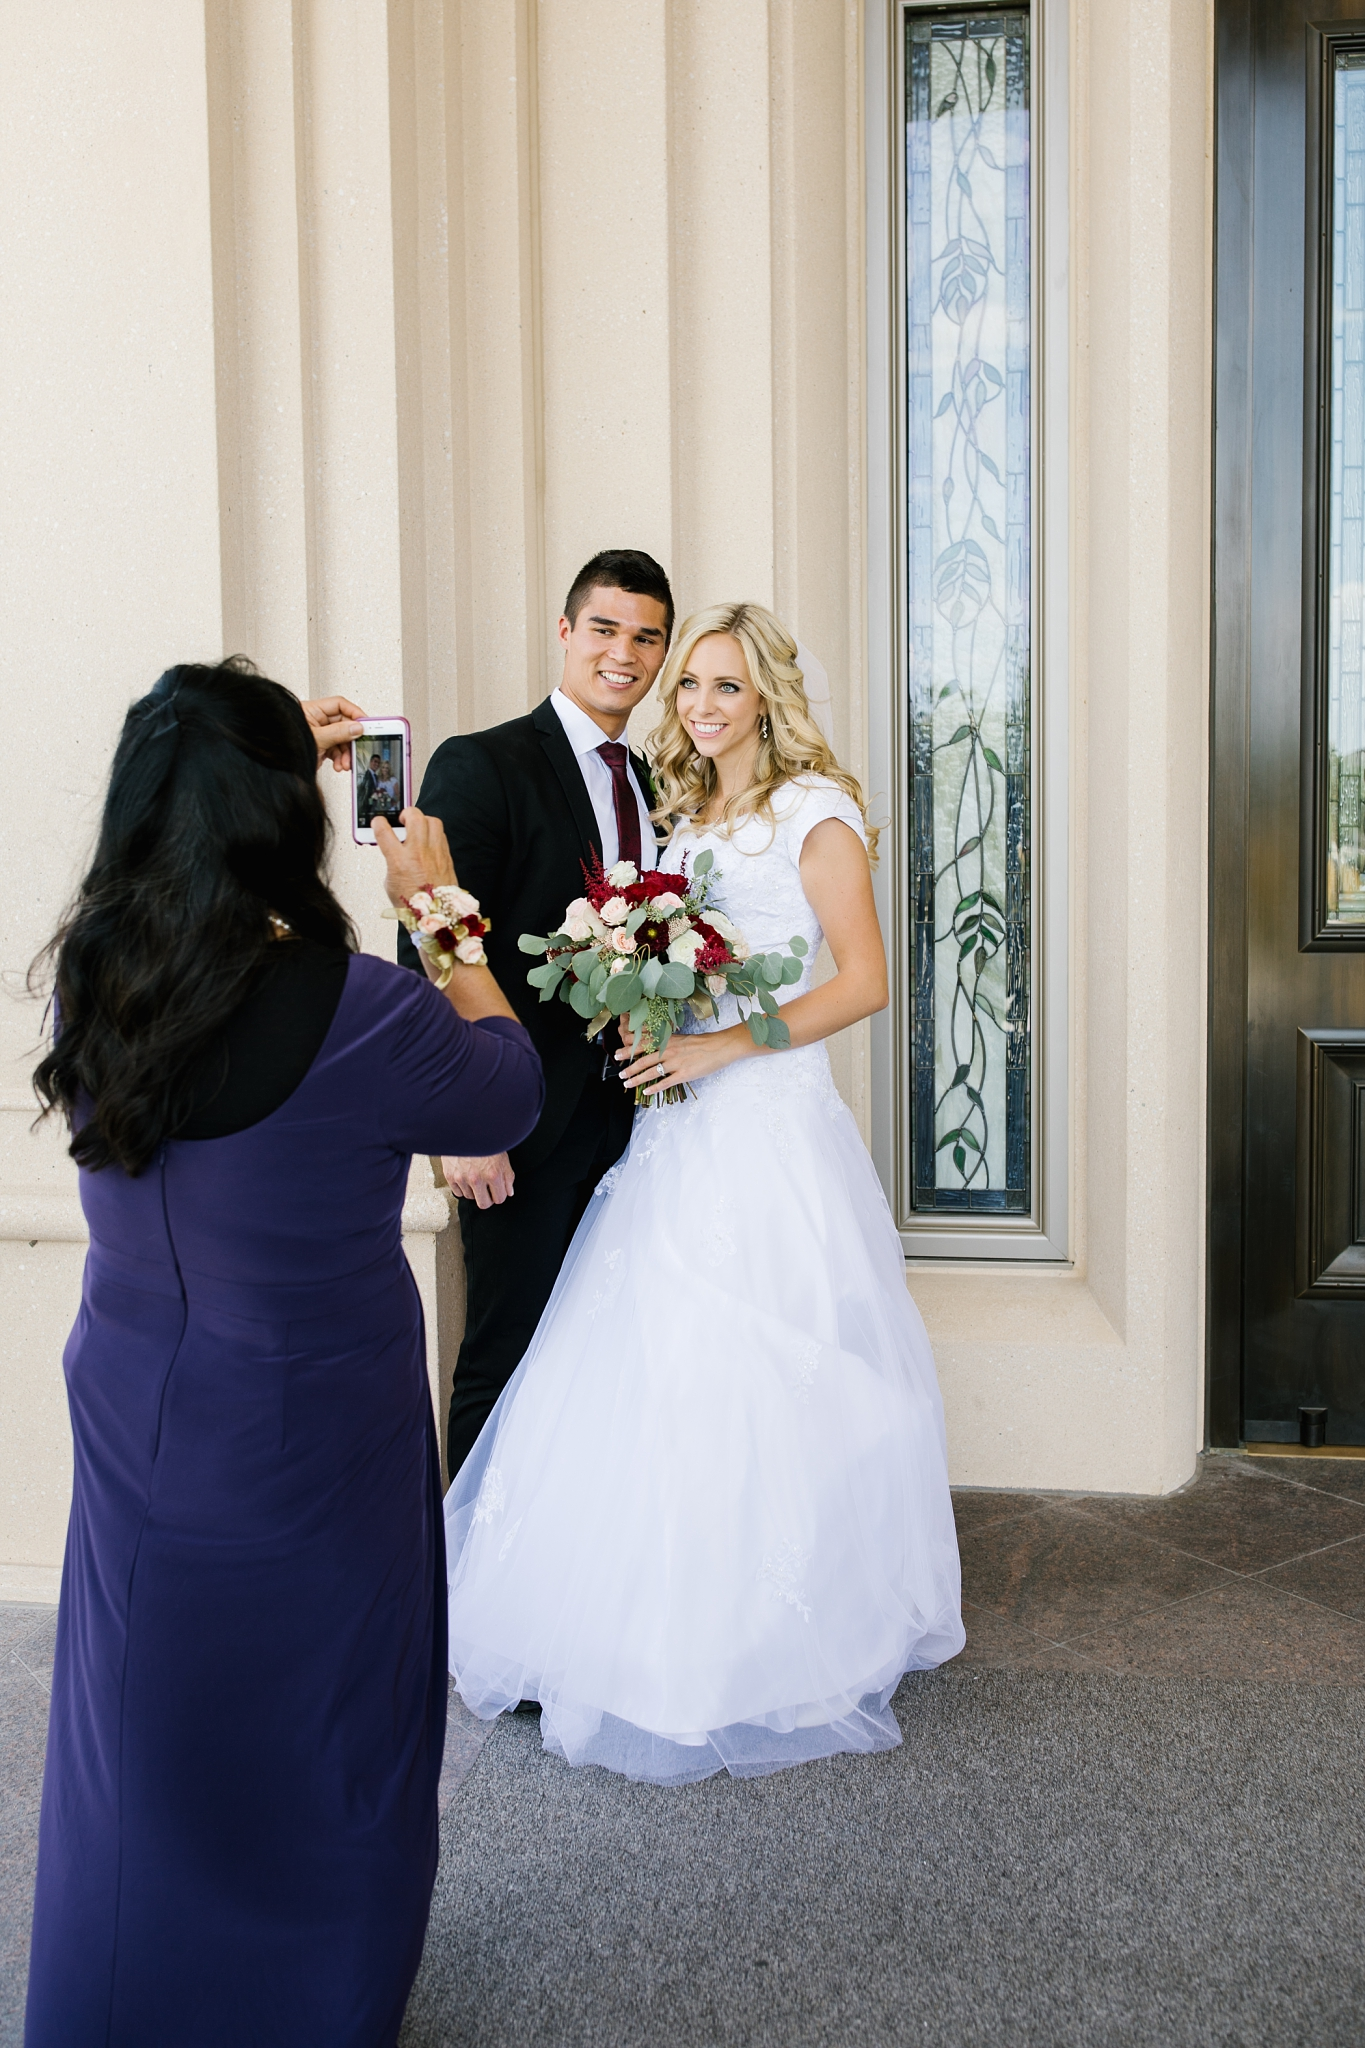 HannahChaseWedding-102_Lizzie-B-Imagery-Utah-Wedding-Photographer-Bridal-Photography-Payson-Utah-Temple-Clarion-Gardens-Catering-and-Events-Center.jpg